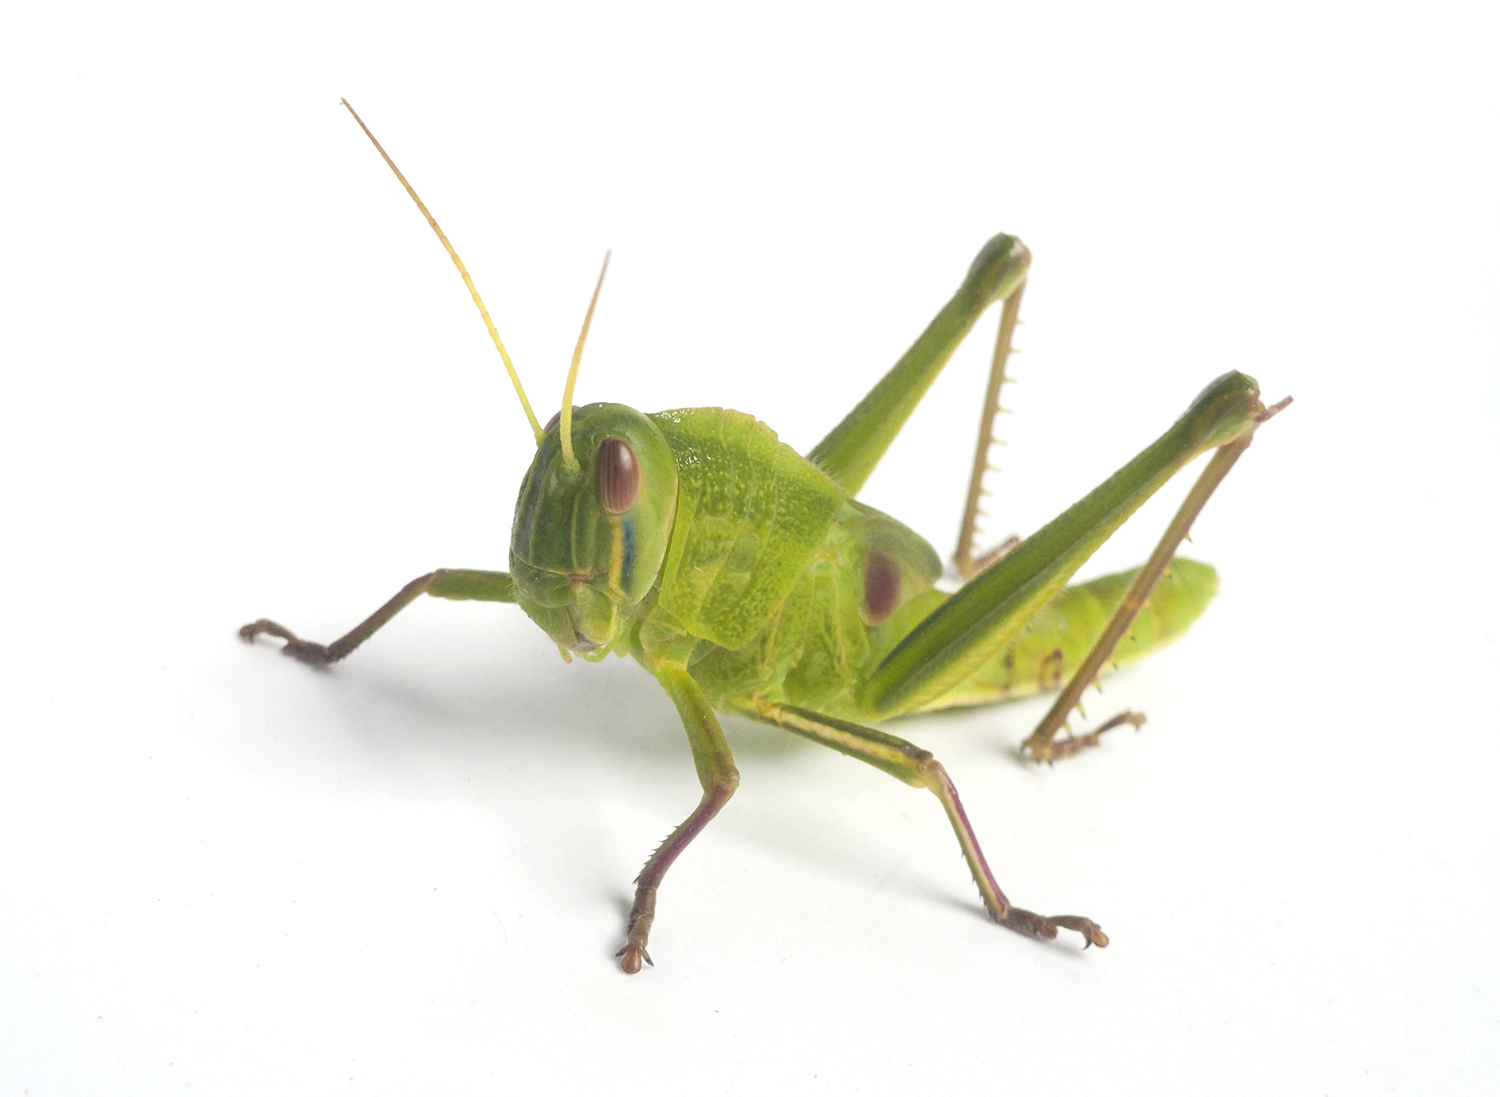 Indoors Garden Grasshoppers How To Control Amp Get Rid Of Grasshoppers